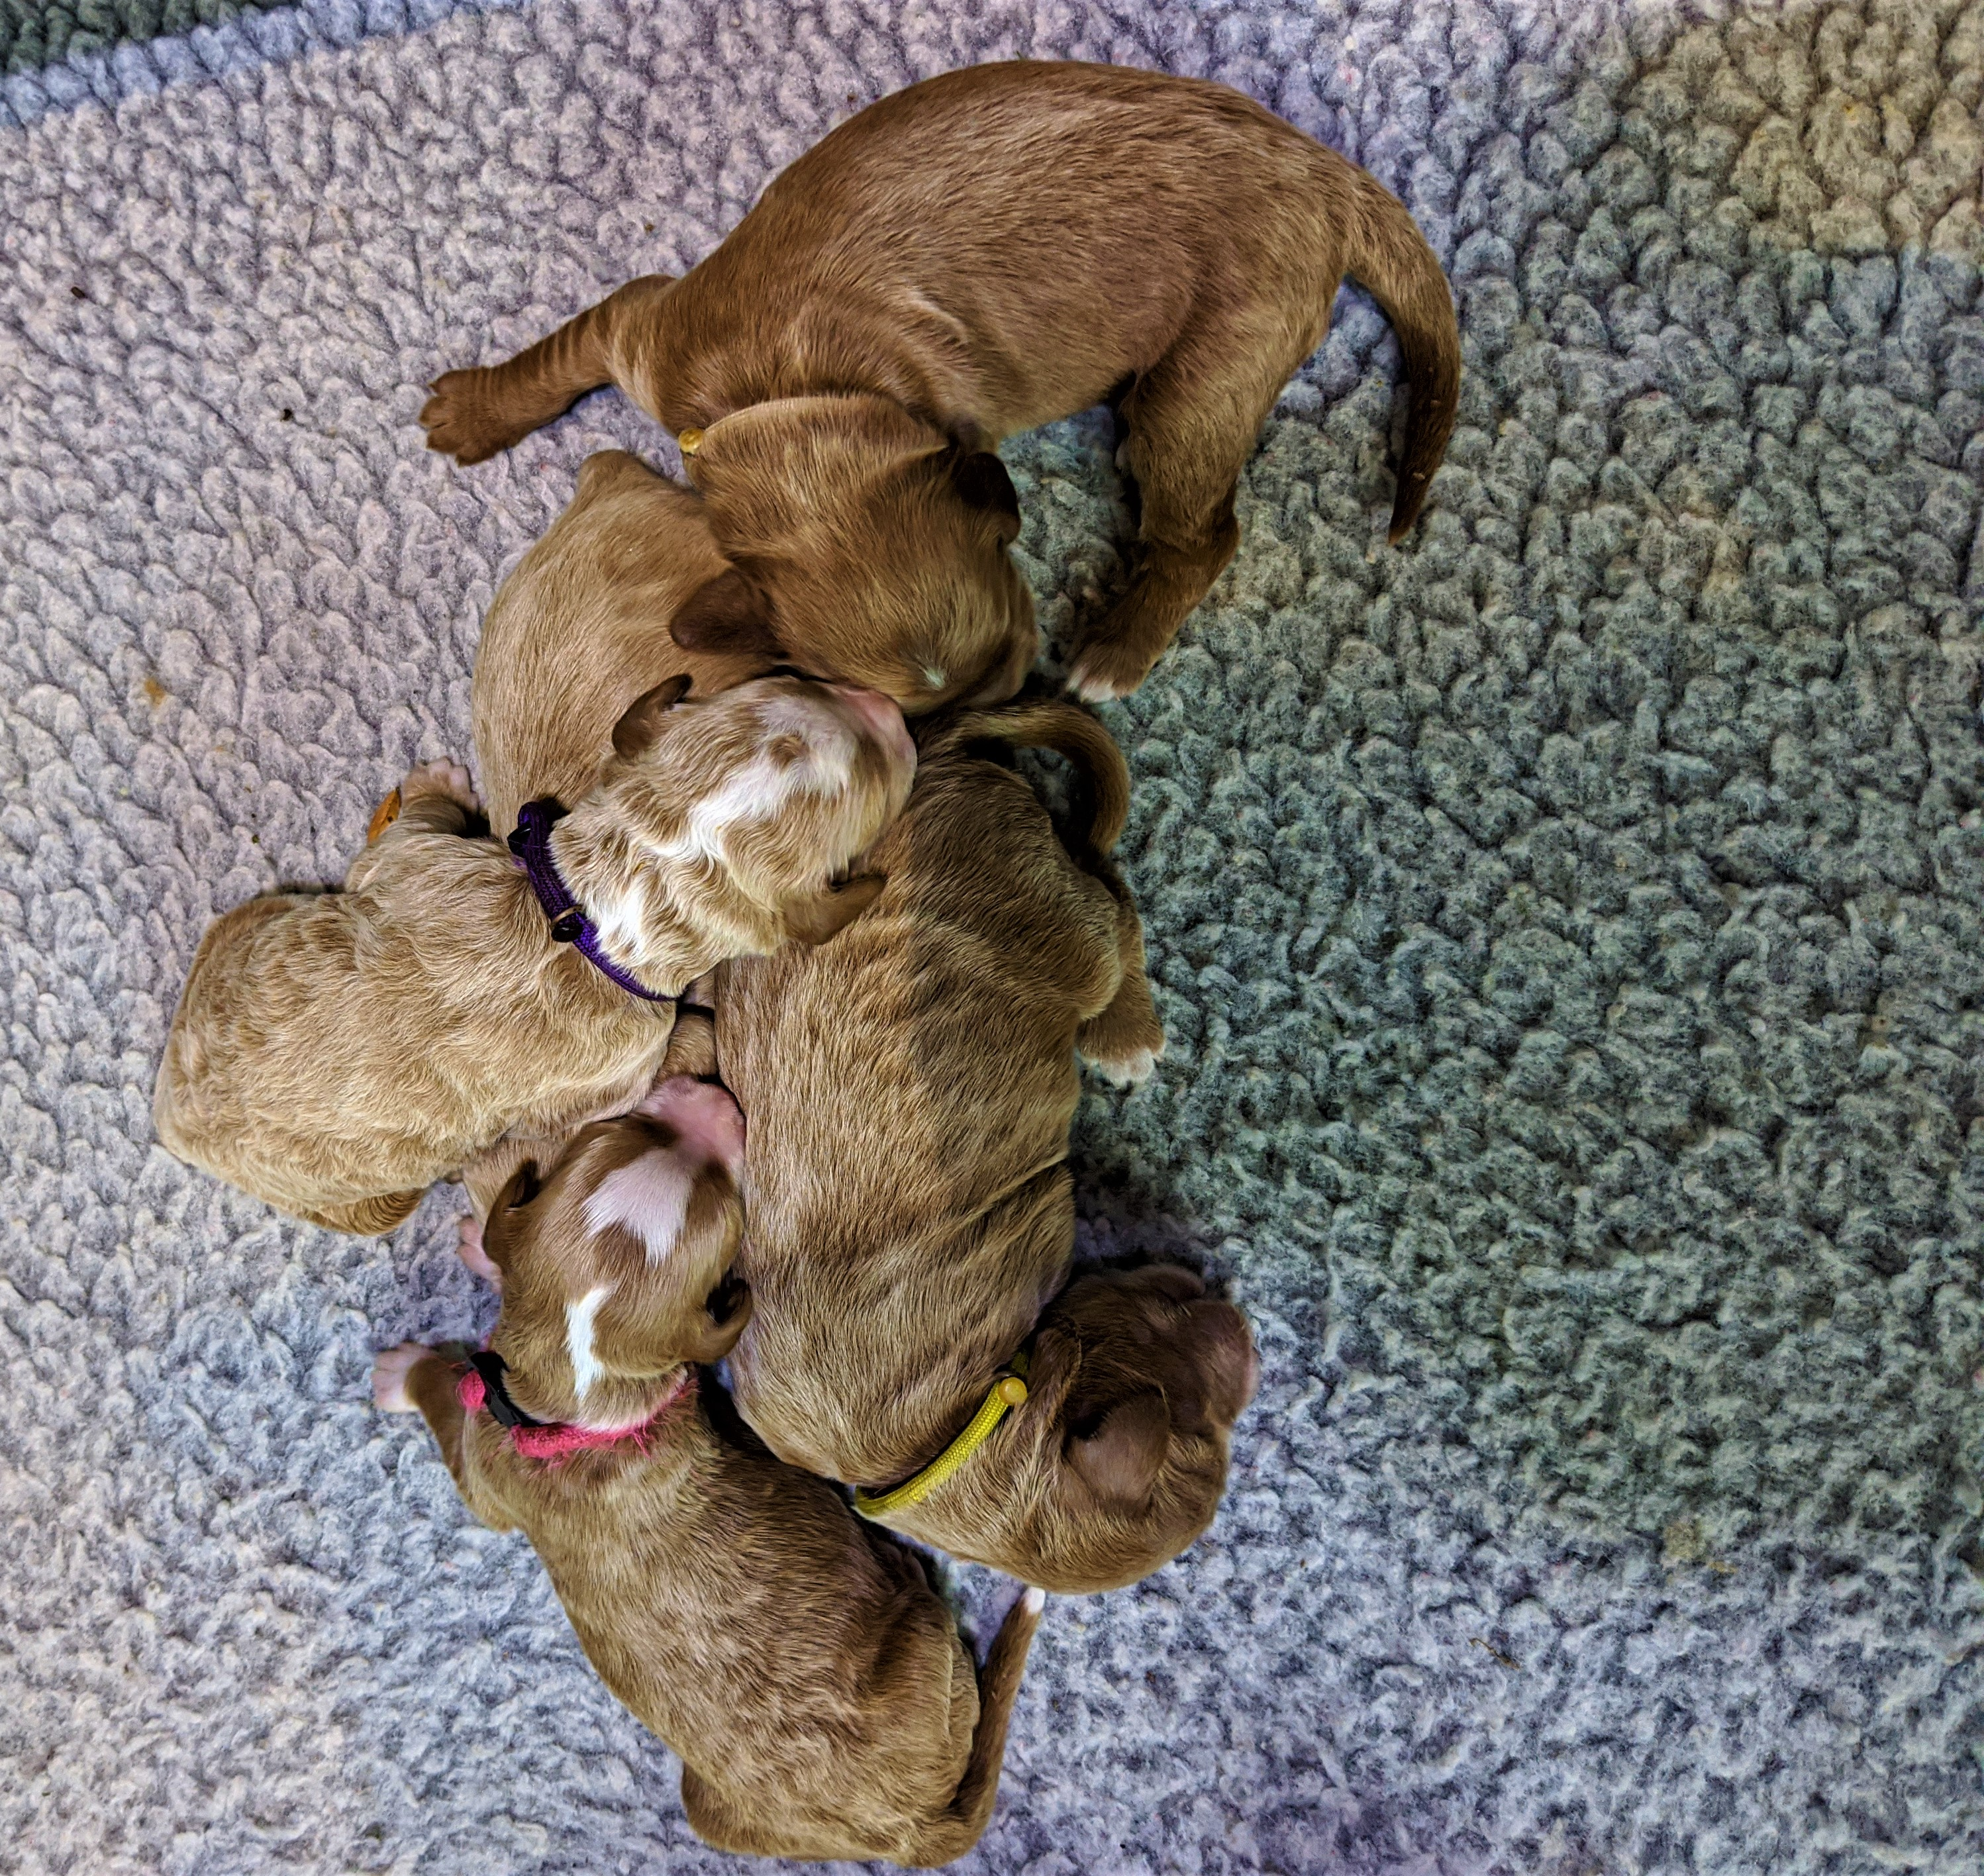 The Girls at 5 days old